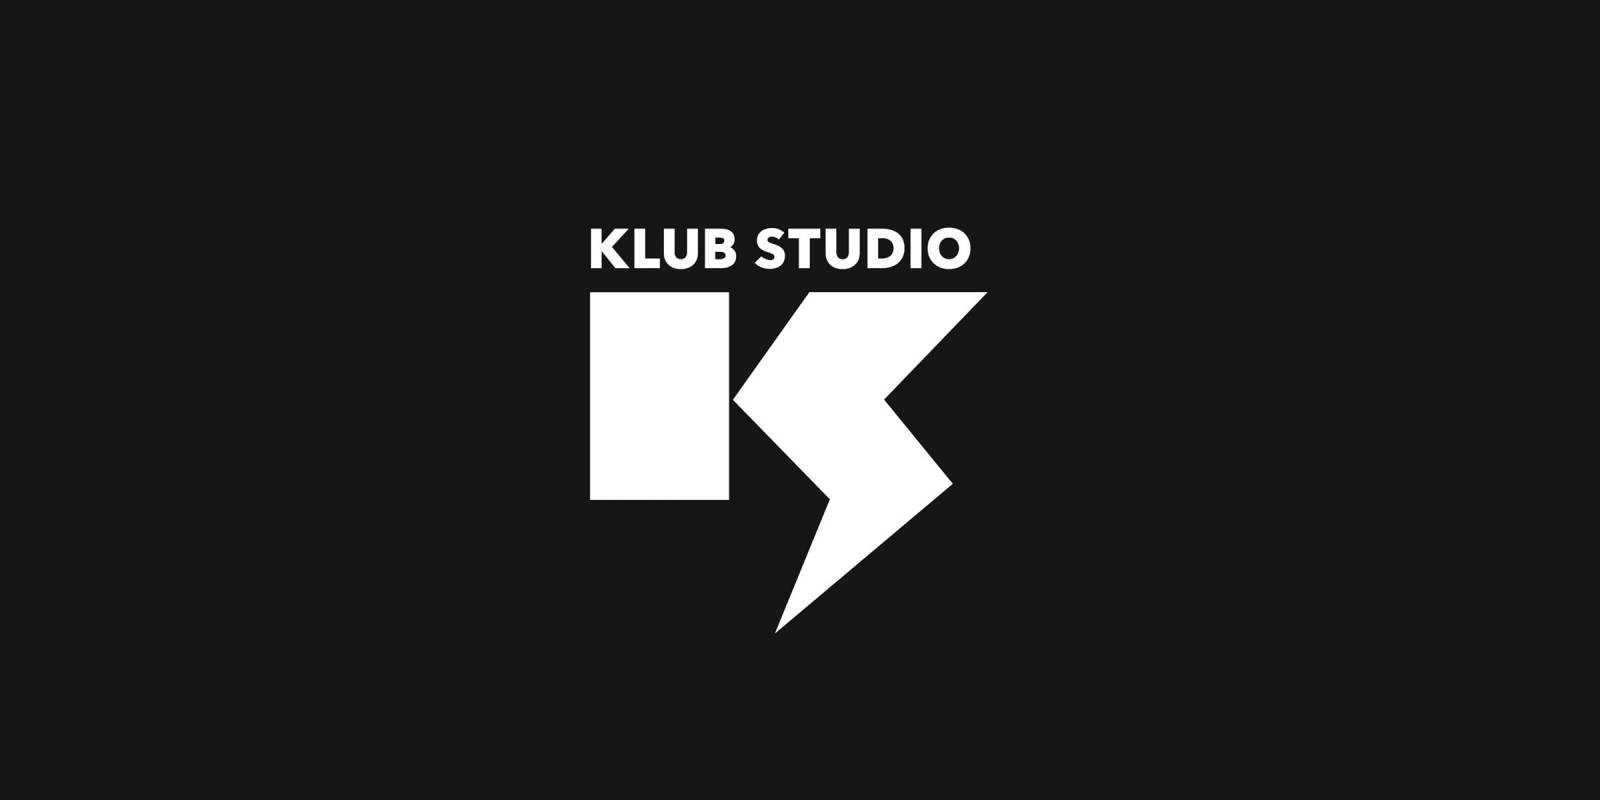 Studio Club Karnet Krakow